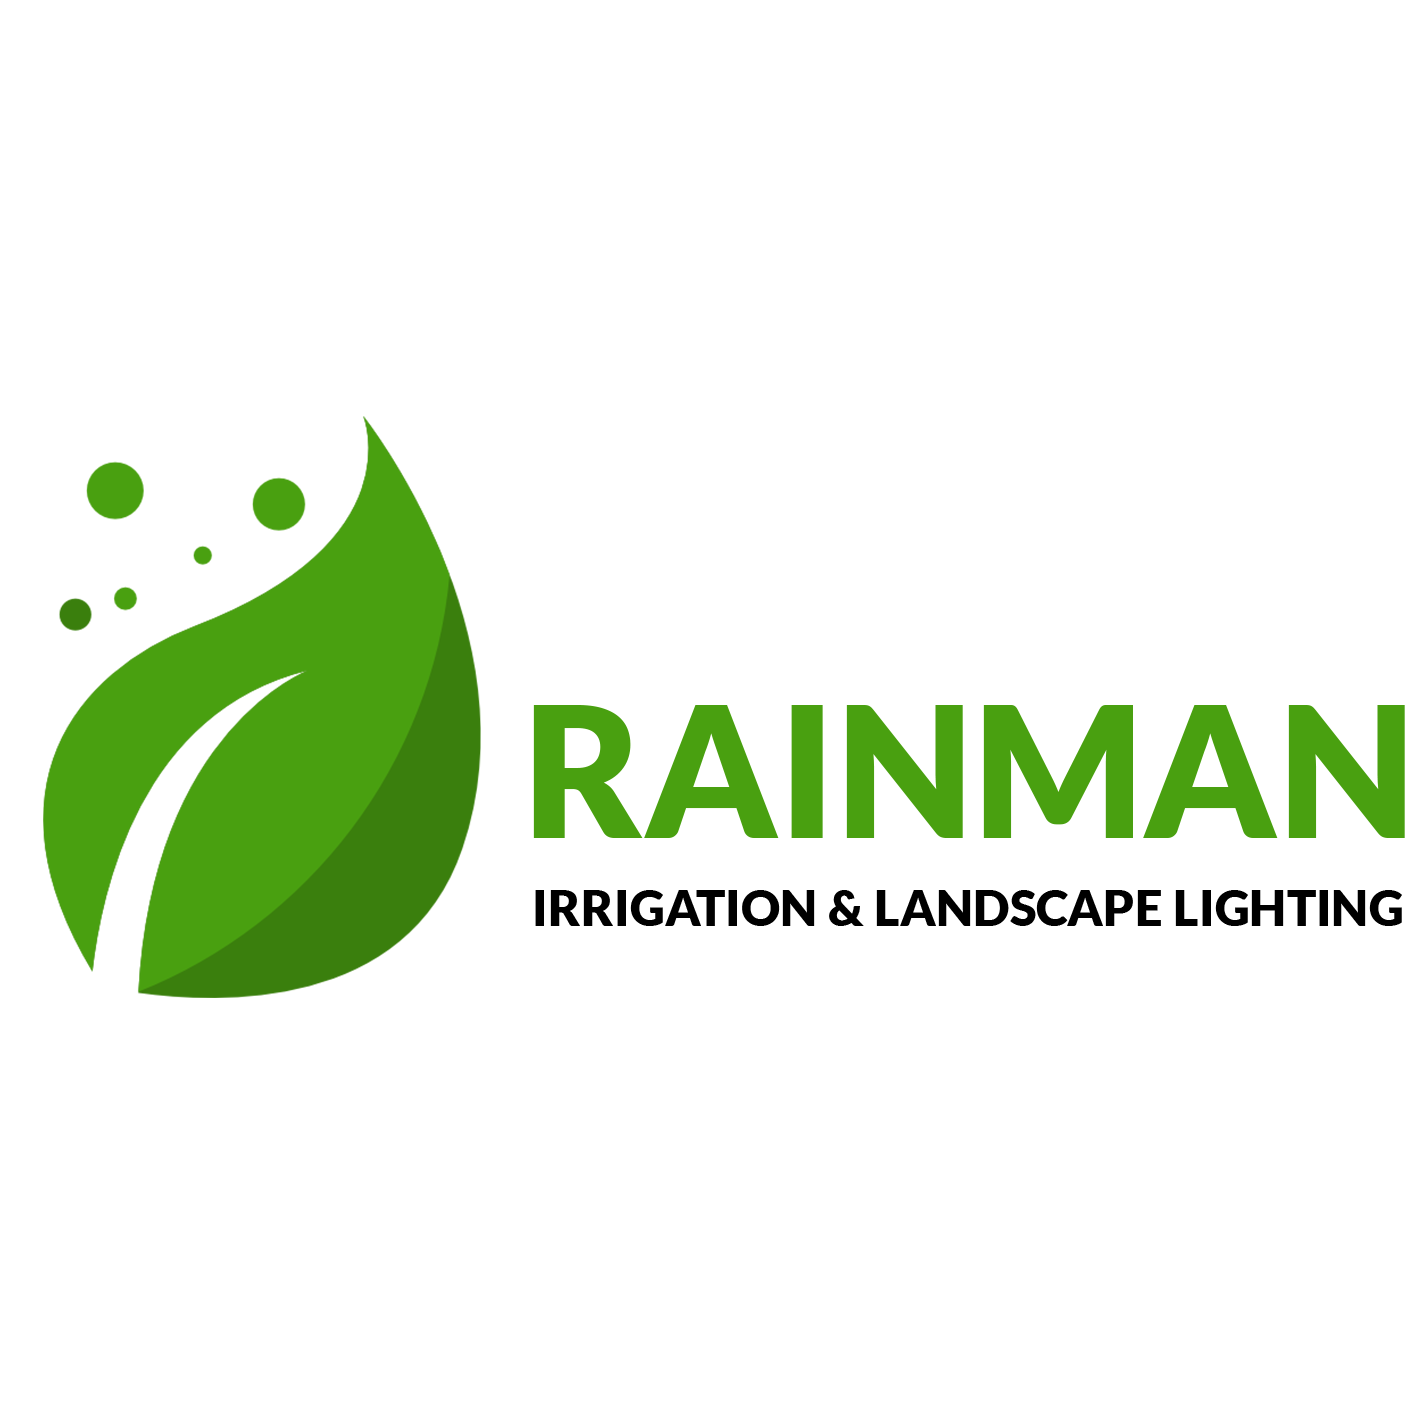 Rainman Irrigation & Landscape Lighting